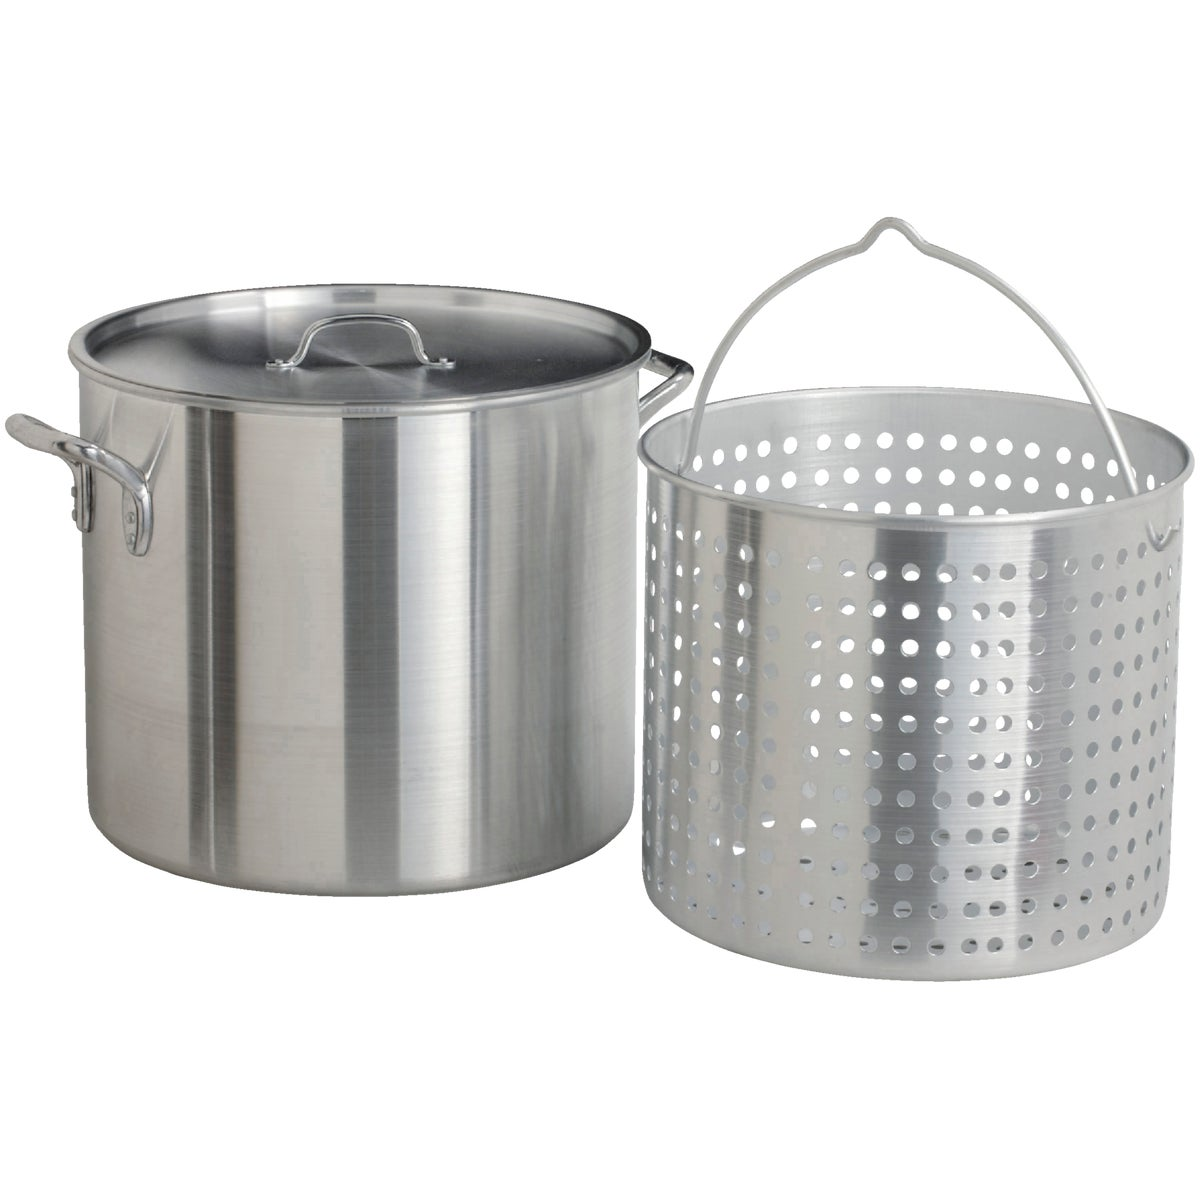 80QT ALUMINUM POT - WG-RPB1080 by Kamach LLC